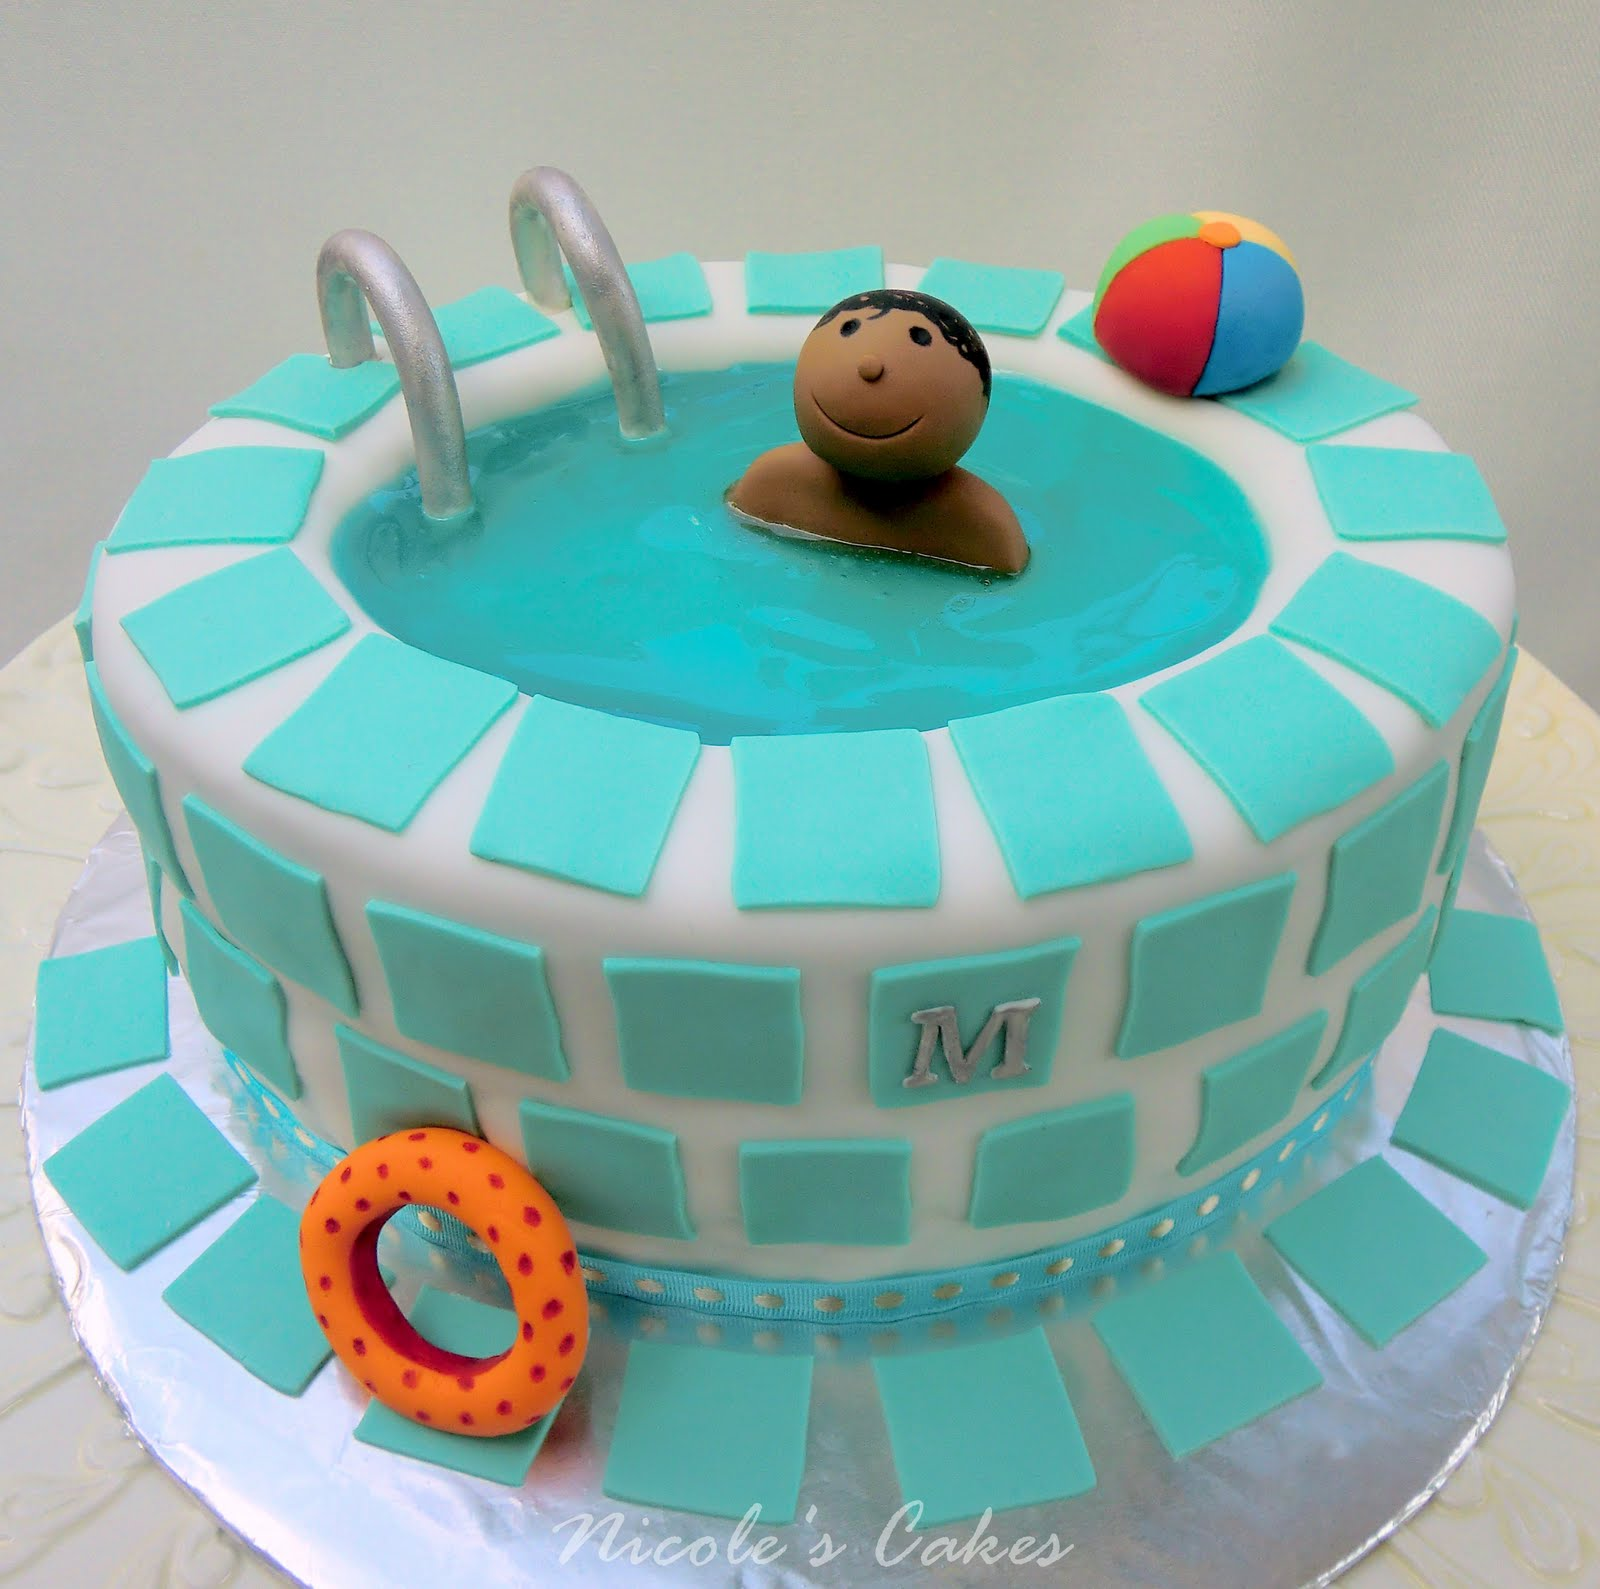 Confections, Cakes & Creations!: Swimming Pool Birthday Cake